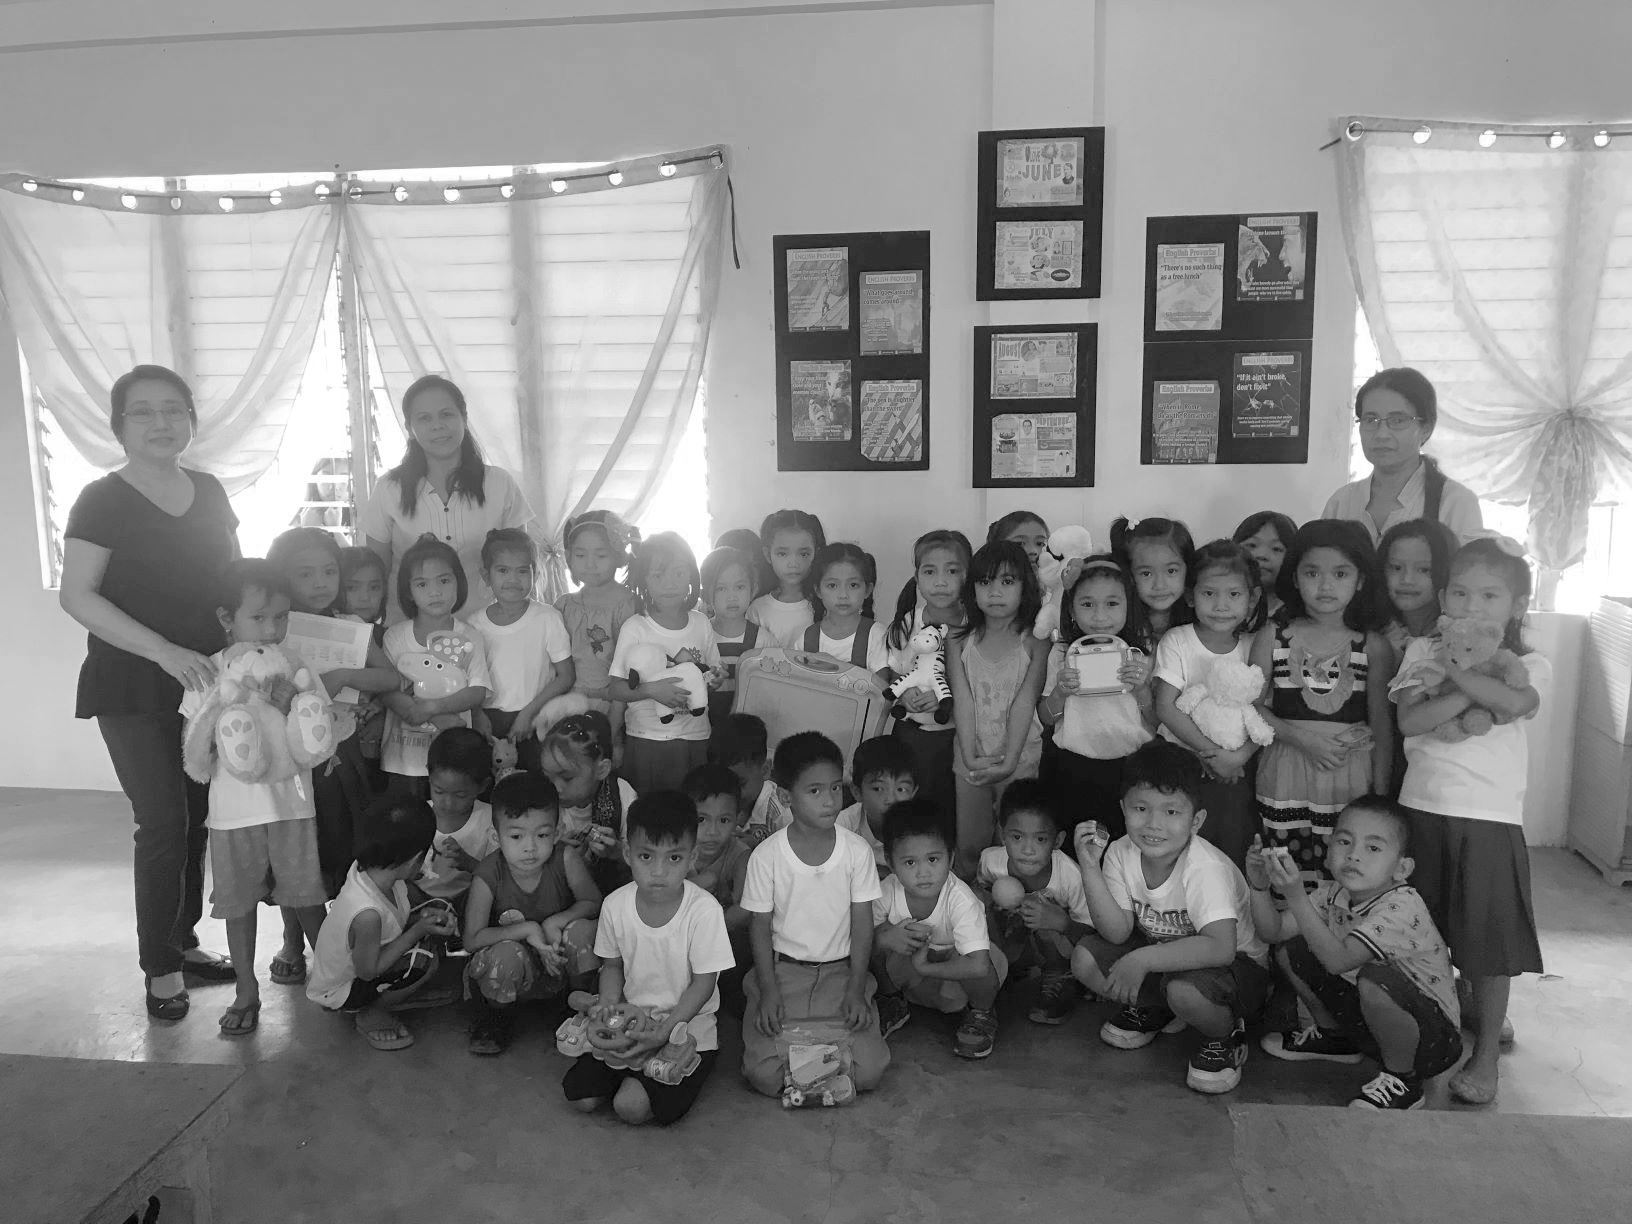 Community Links - We've also established community links in the Philippines, whereby Vicky and the UK team collect clothes and toys for the children of farmers in typhoon prone local villages. The company has also contributed towards a typhoon recovery programme and helped sponsor the building of a Kindergarten.